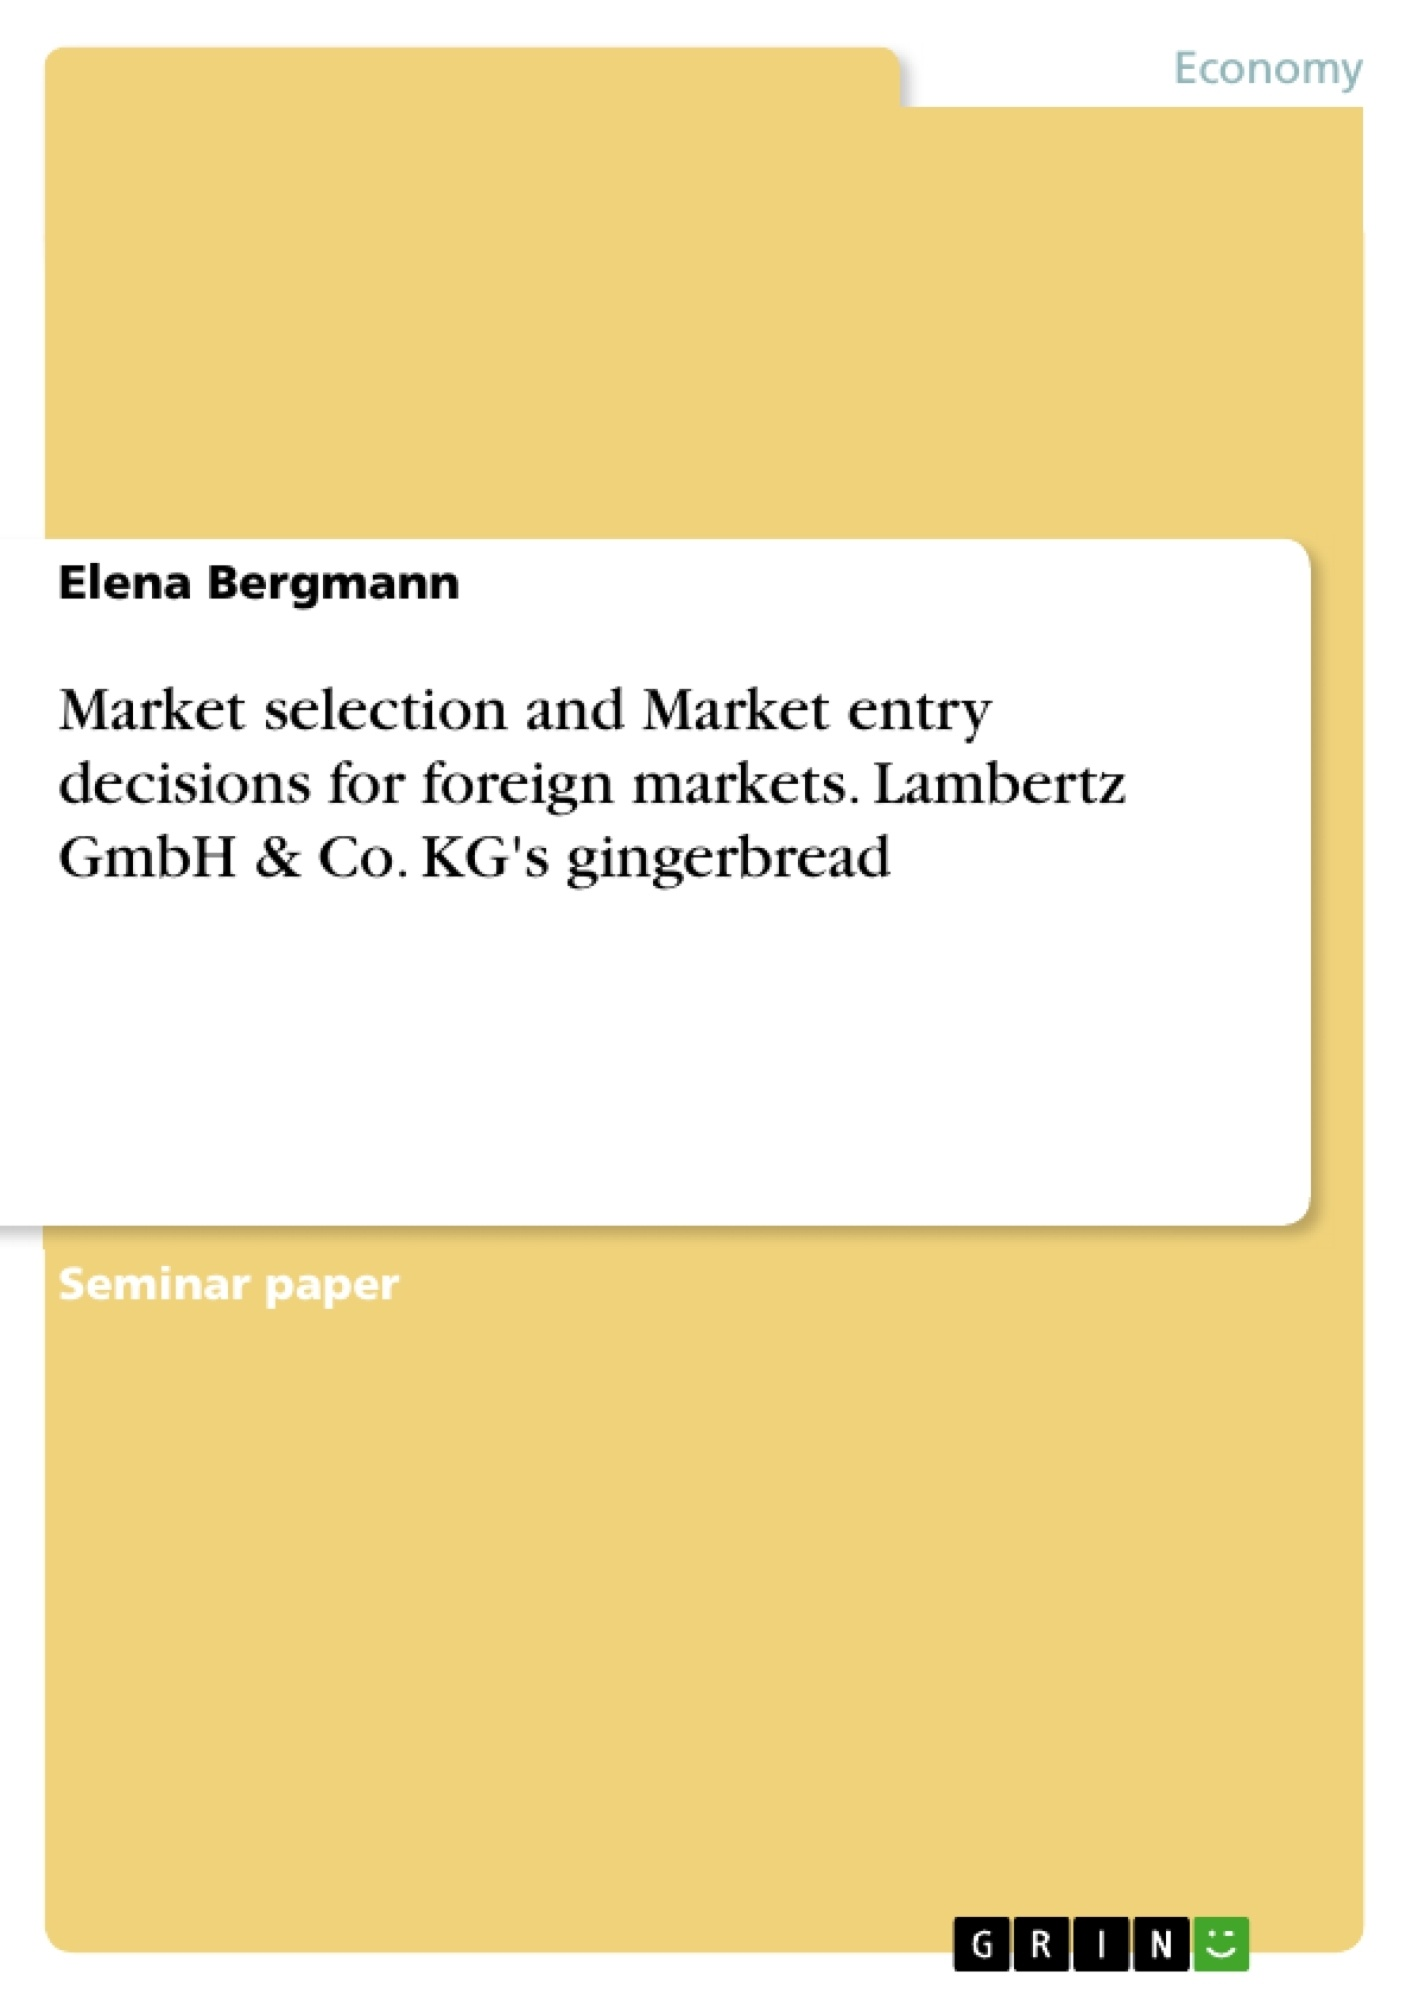 Title: Market selection and Market entry decisions for foreign markets. Lambertz GmbH & Co. KG's gingerbread